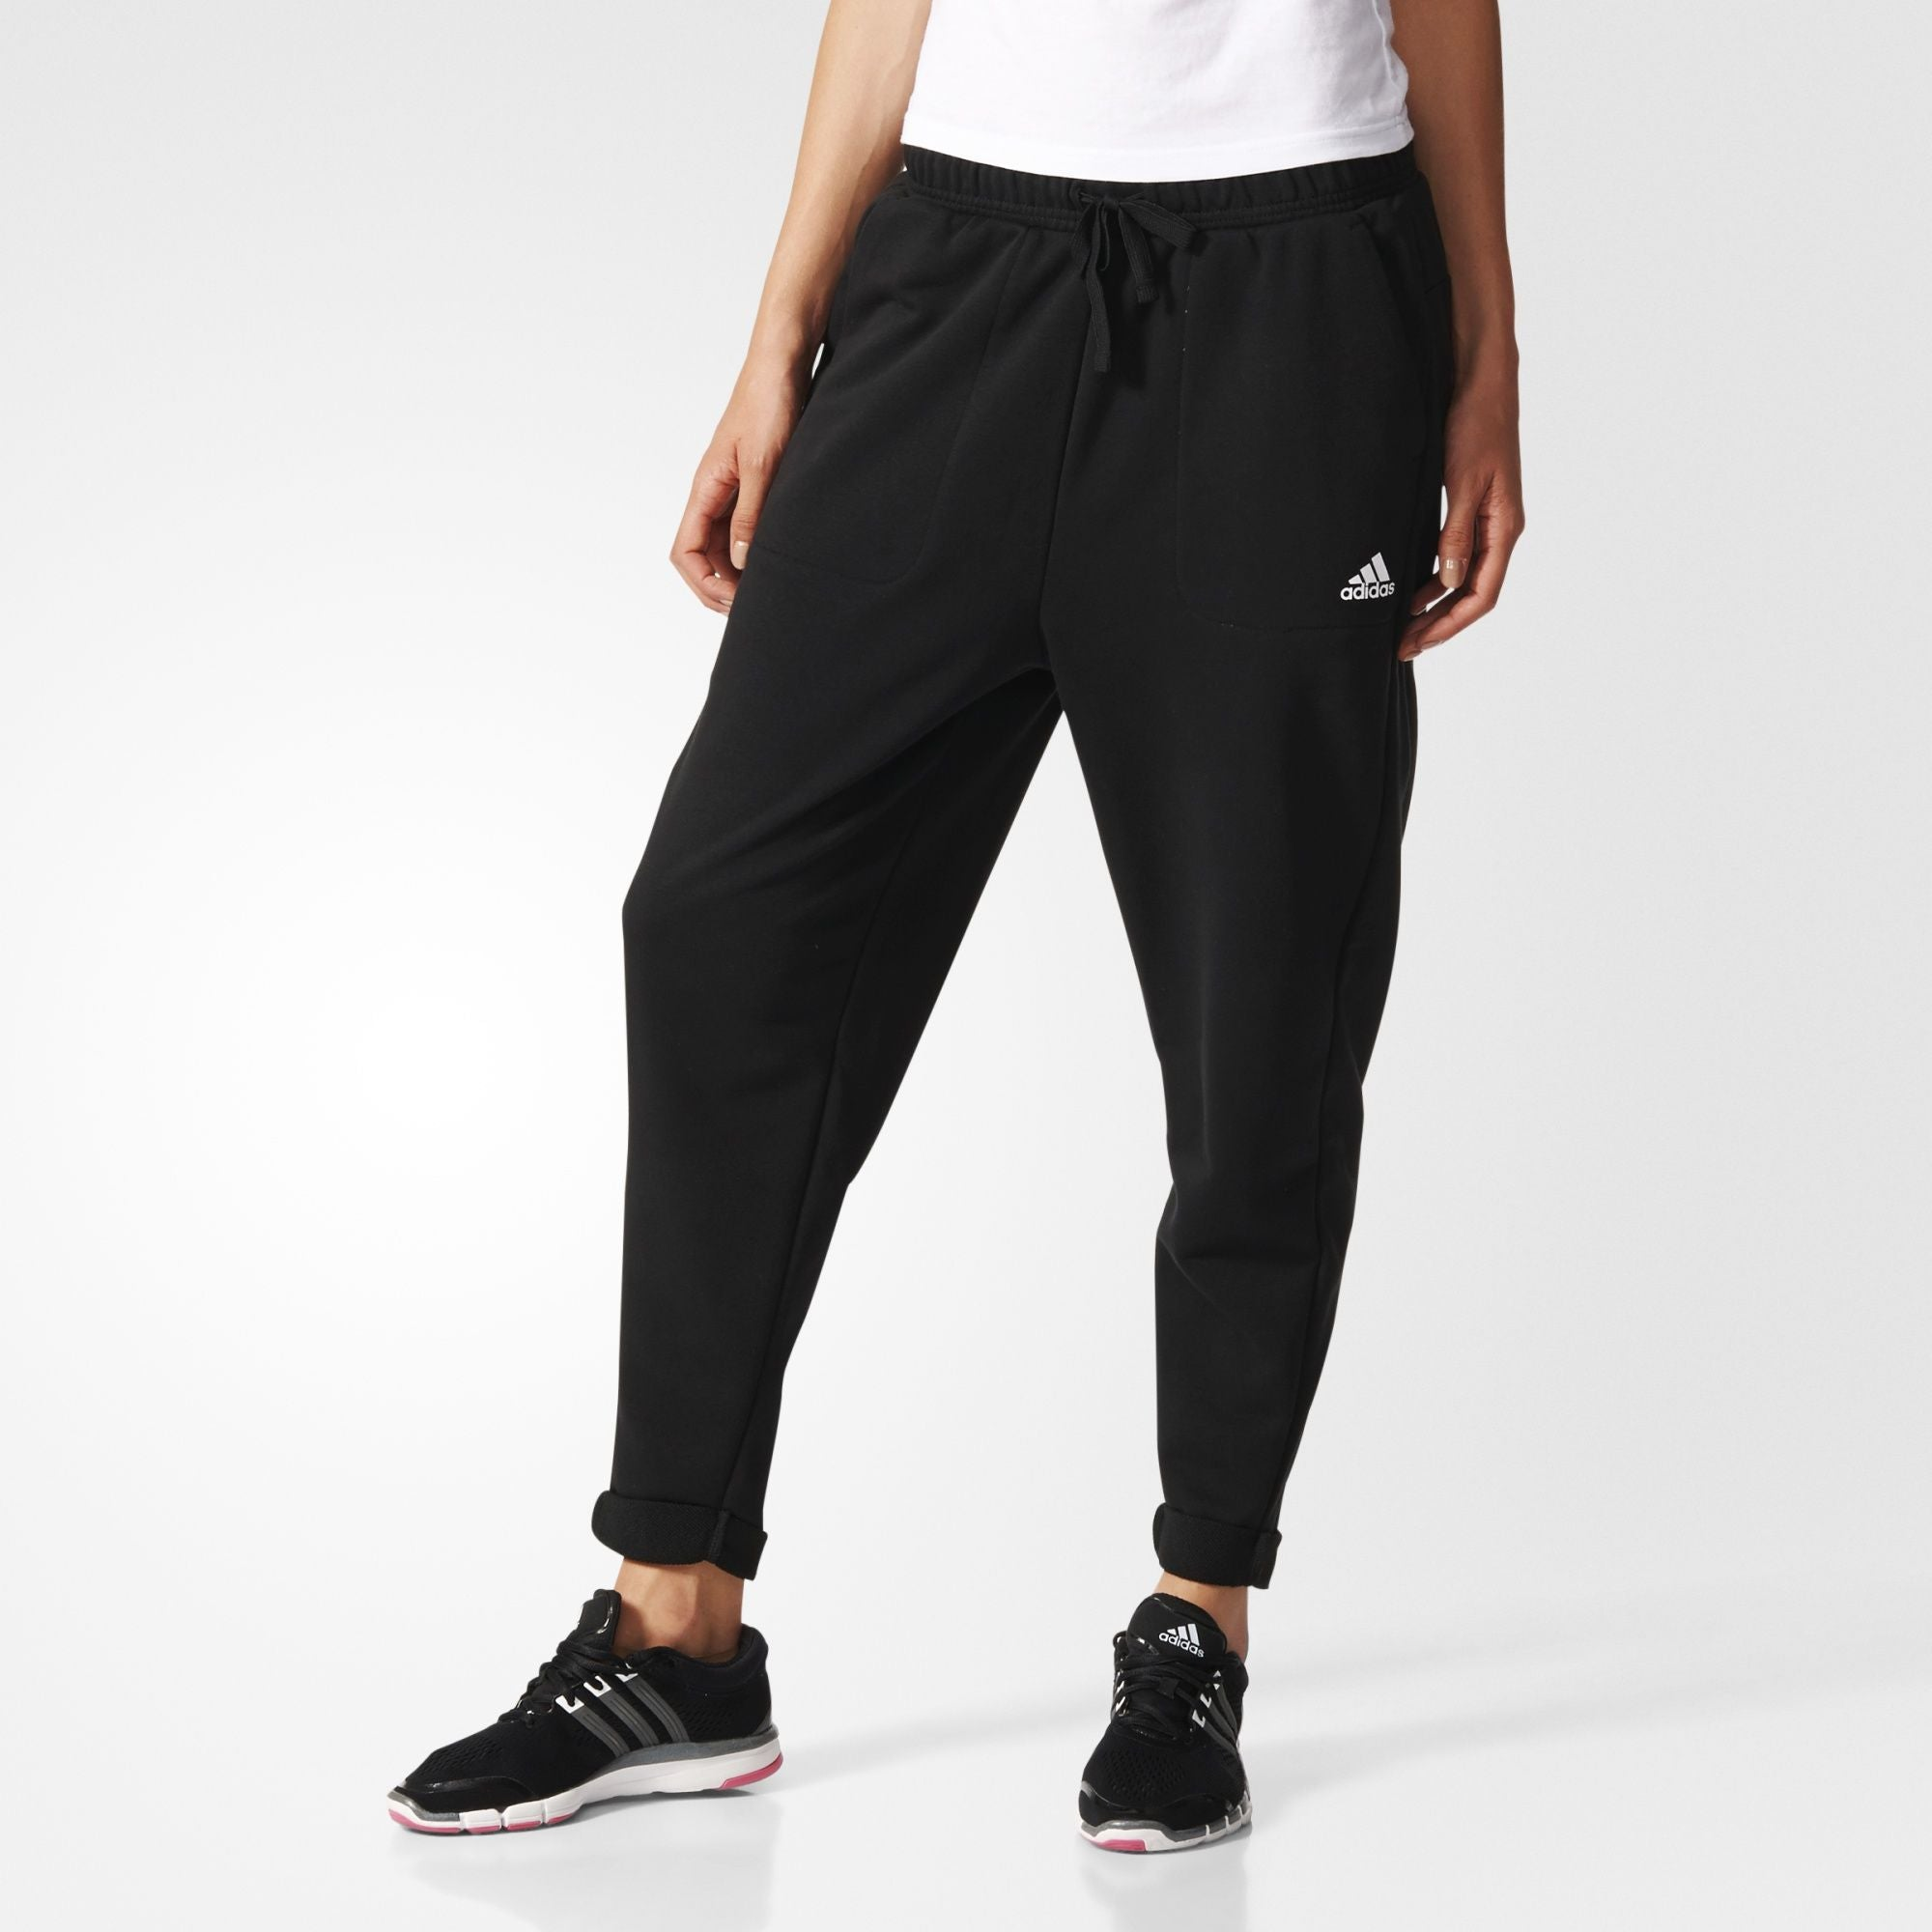 Adidas Women's Essentials Boyfriend Pants Black-S97161